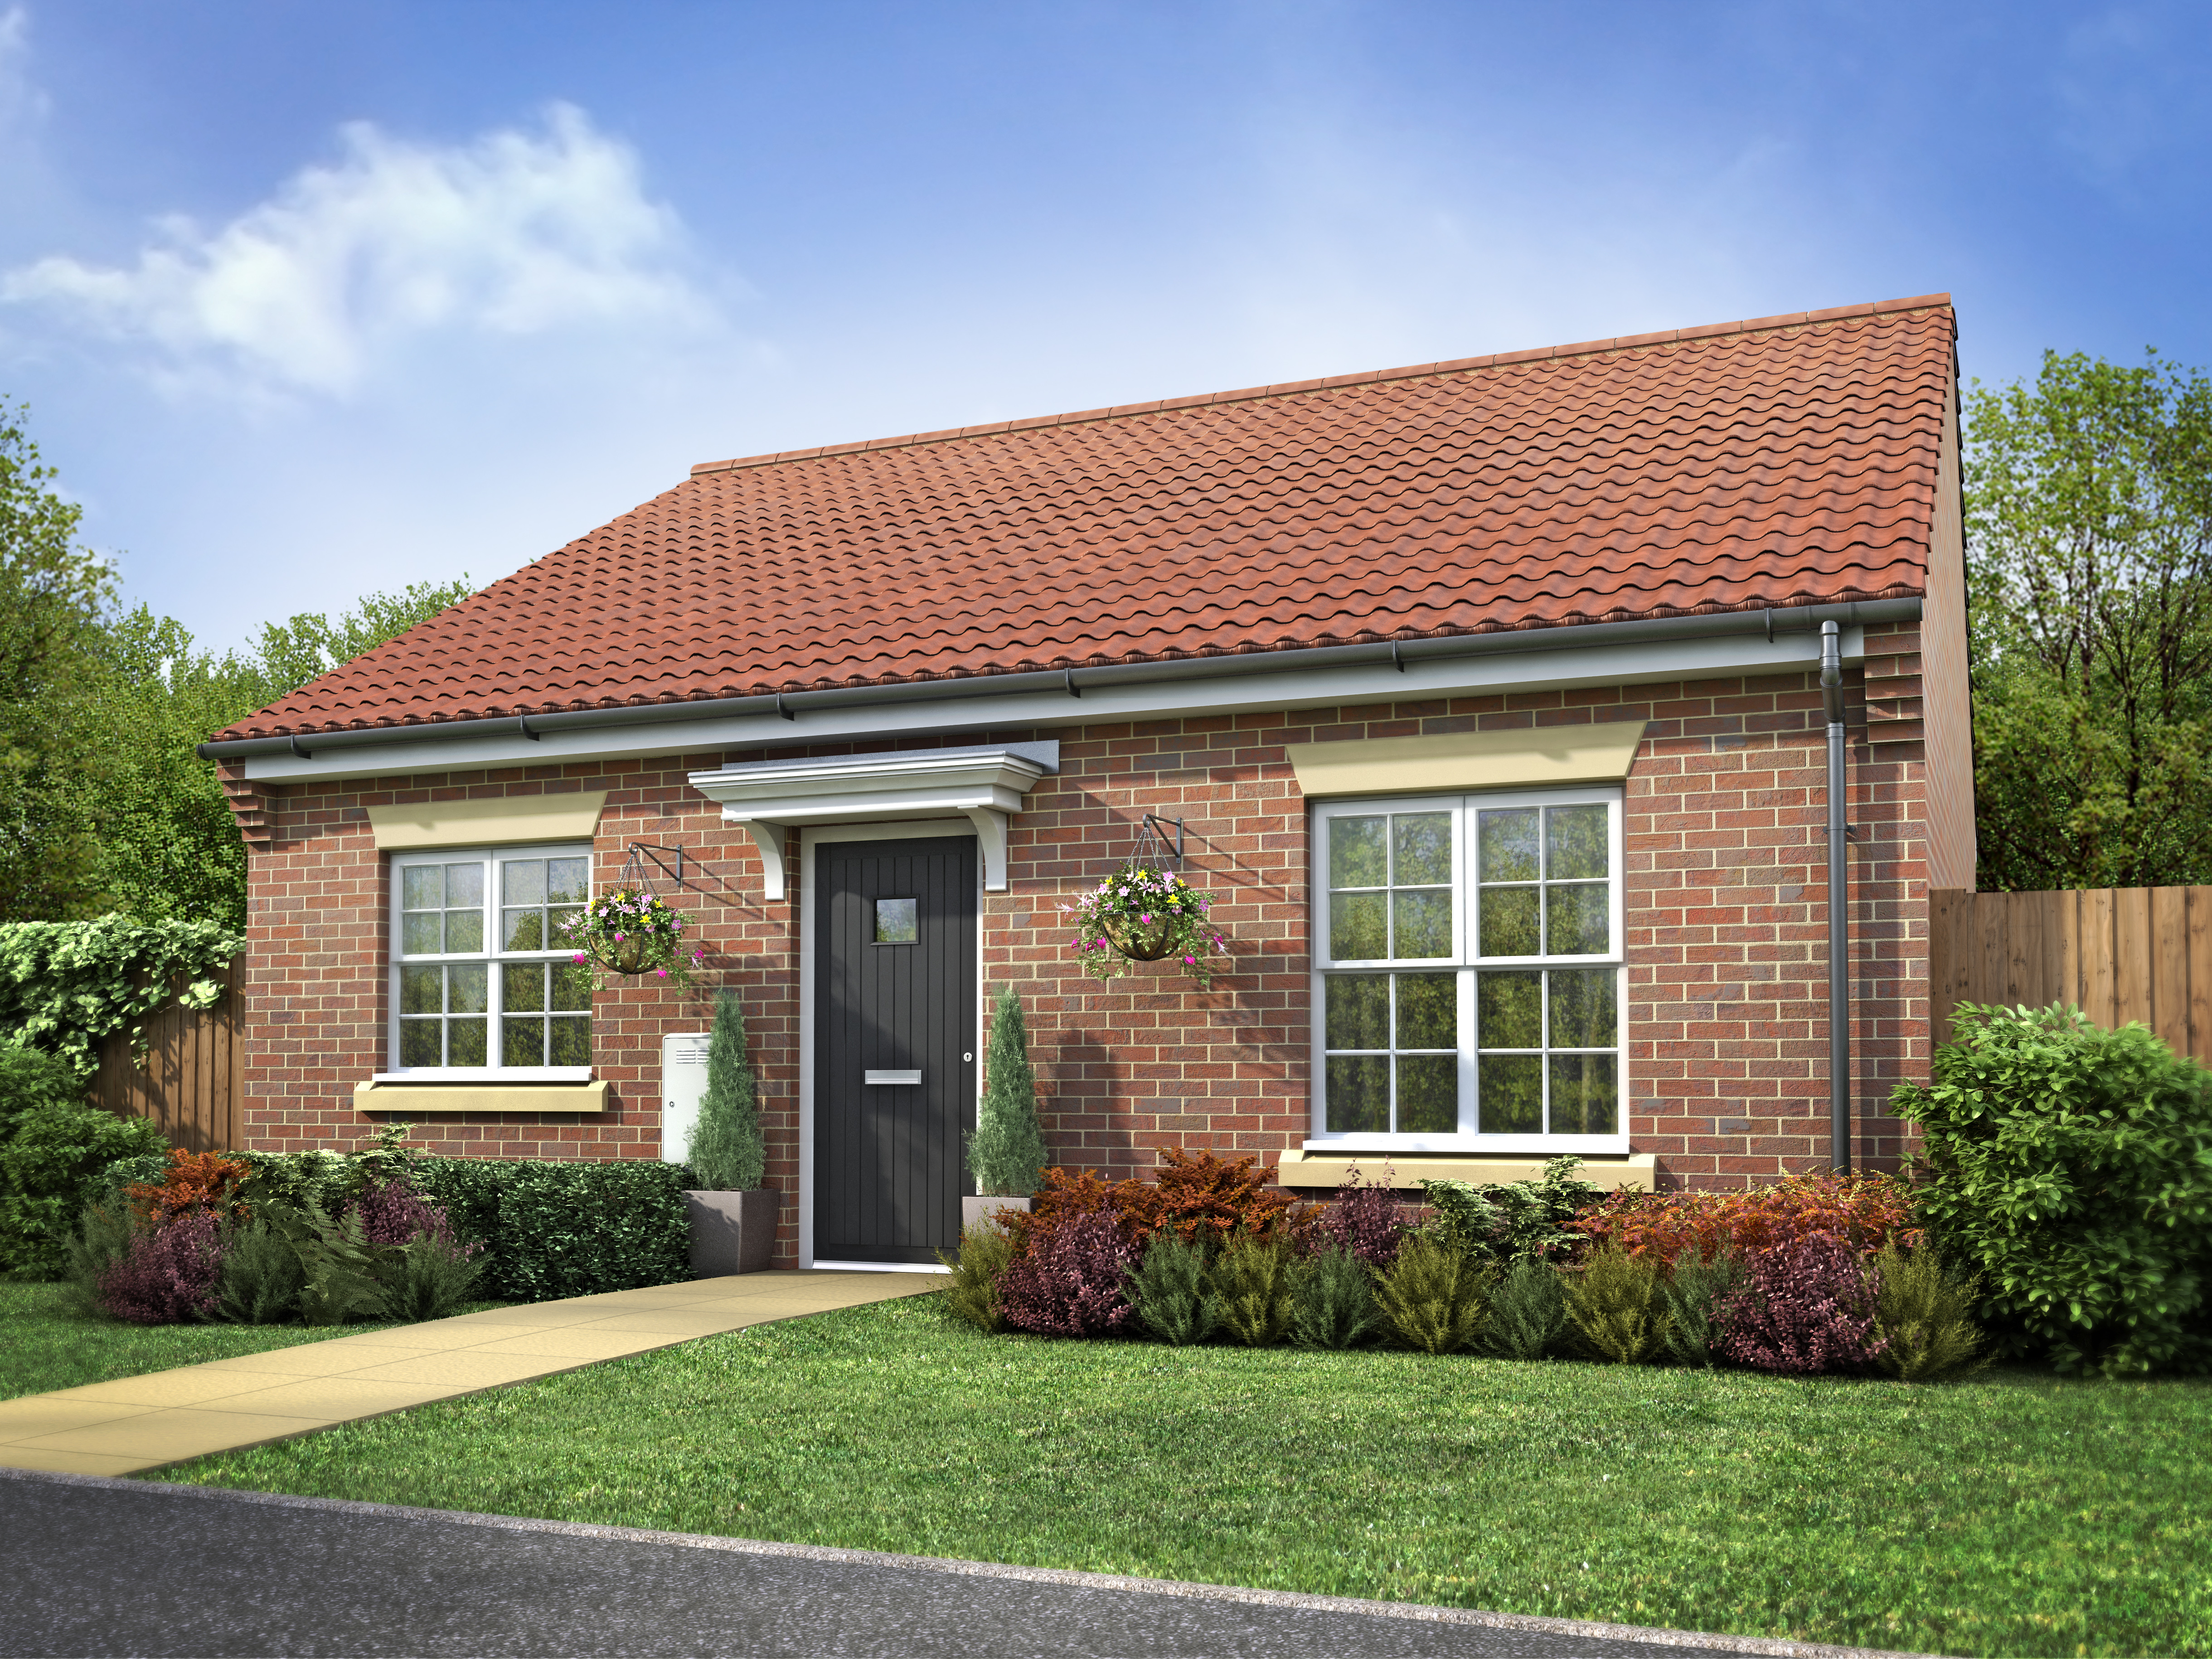 Bungalow Taylor Wimpey